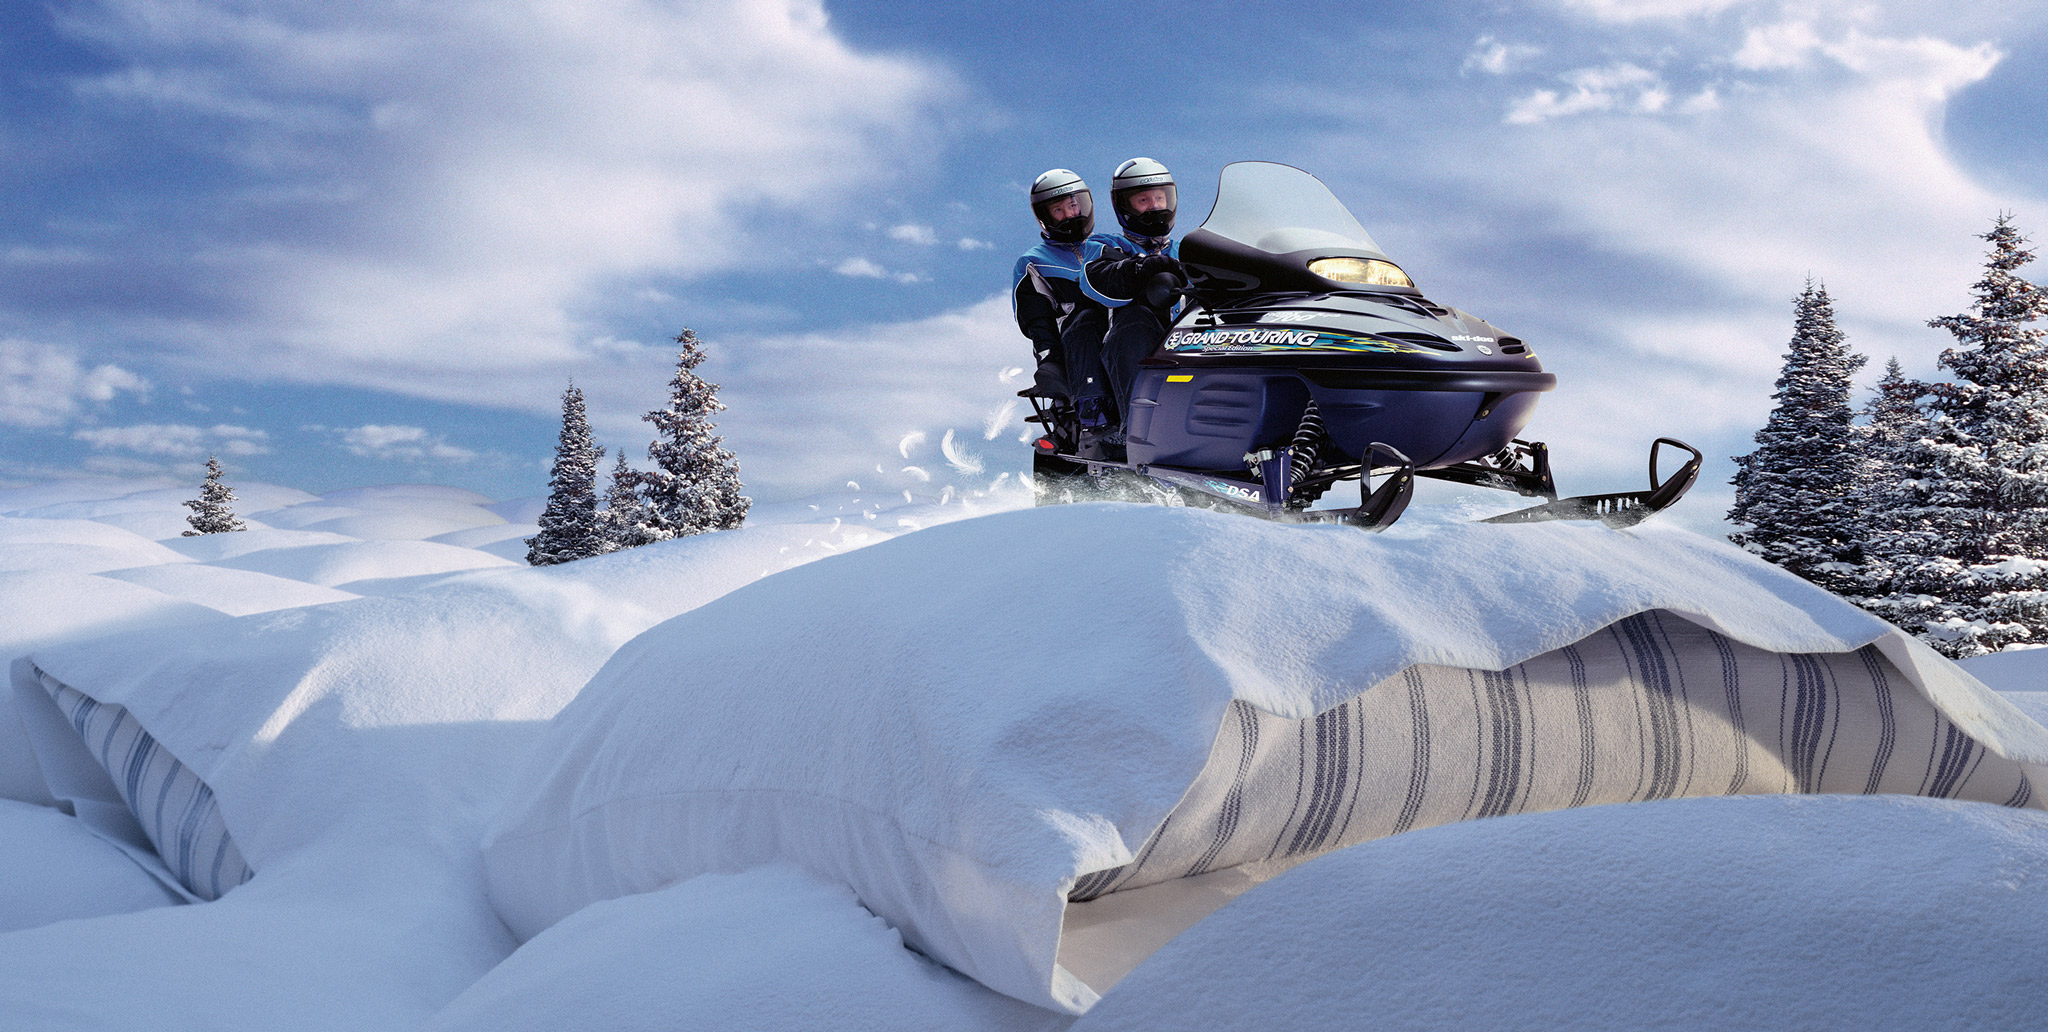 SkiDoo | snowmobile riding on pillows | miniature set | Glen Wexler | Advertising Photographer